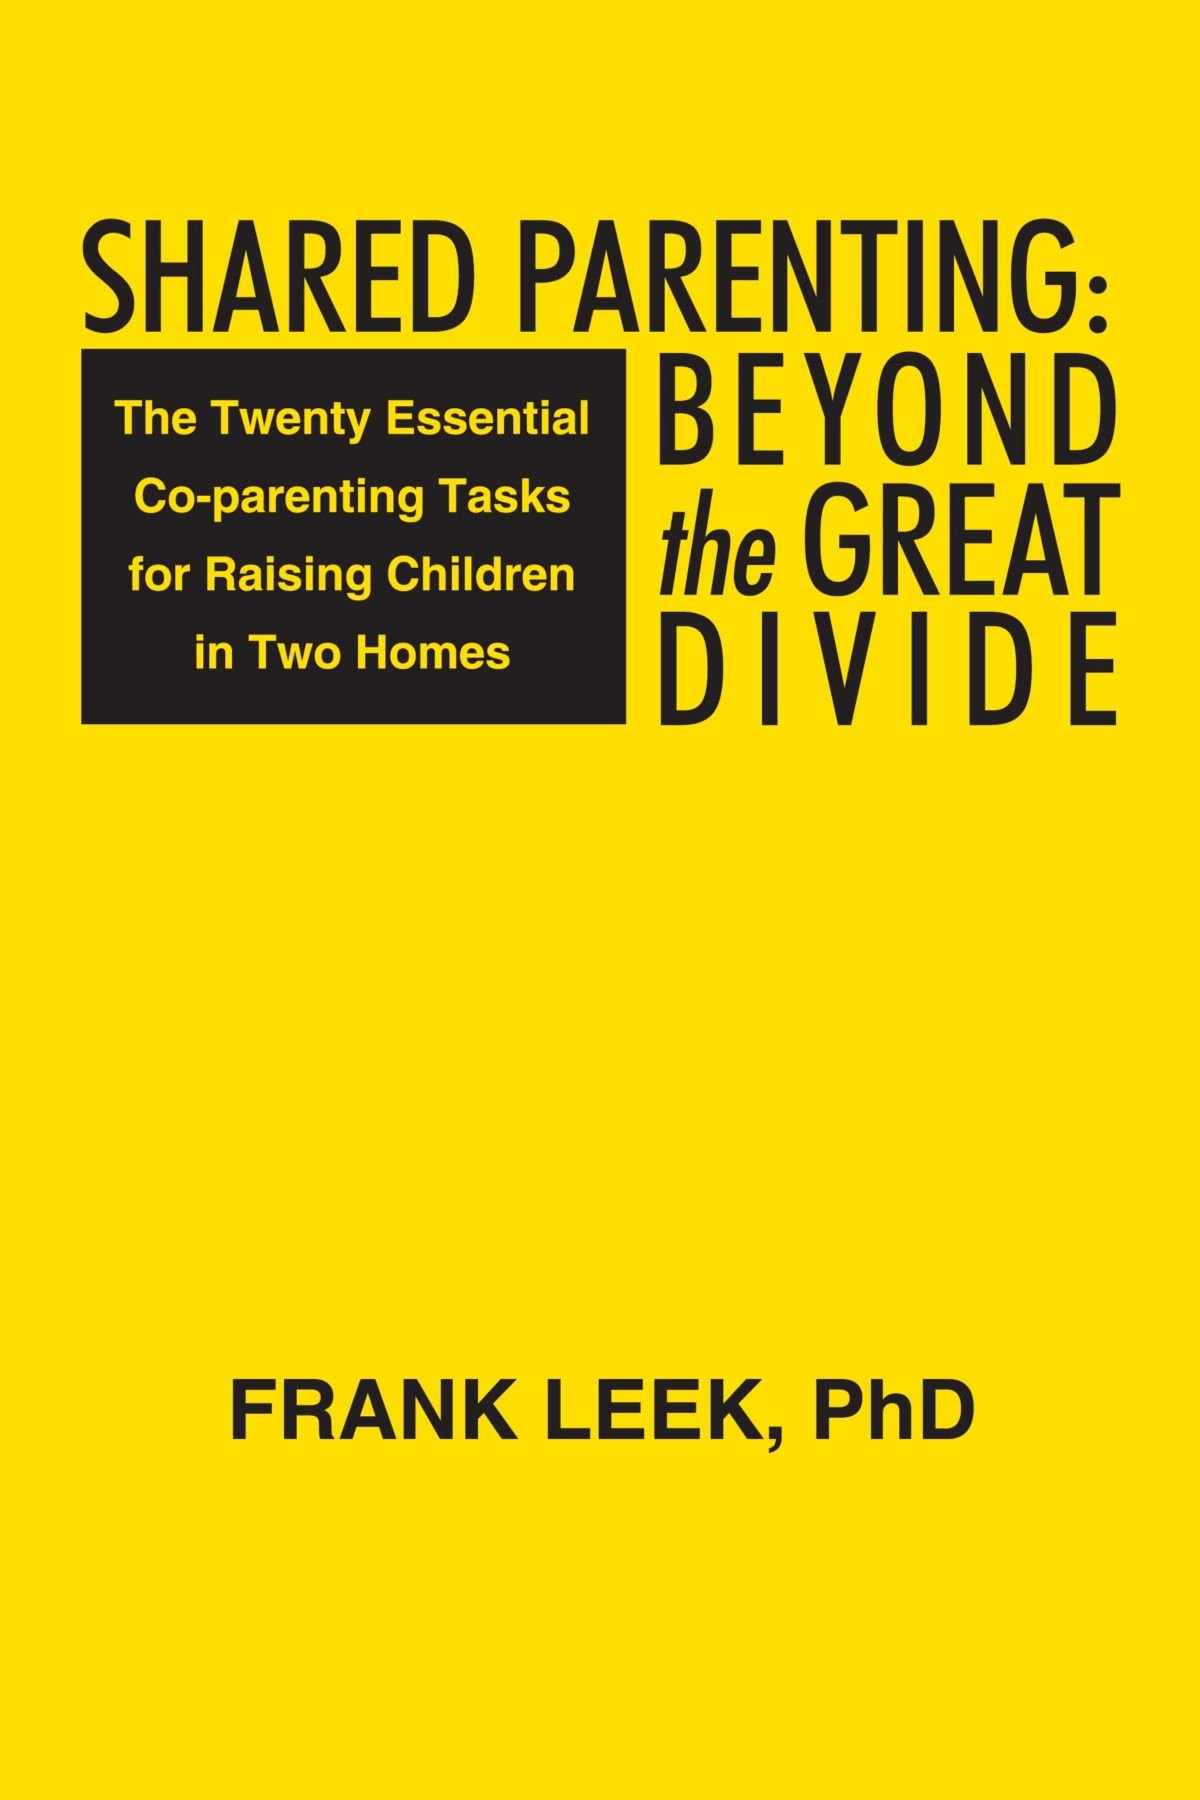 Download Shared Parenting: Beyond The Great Divide: The Twenty Essential Co-Parenting Tasks For Raising Children In Two Homes ebook